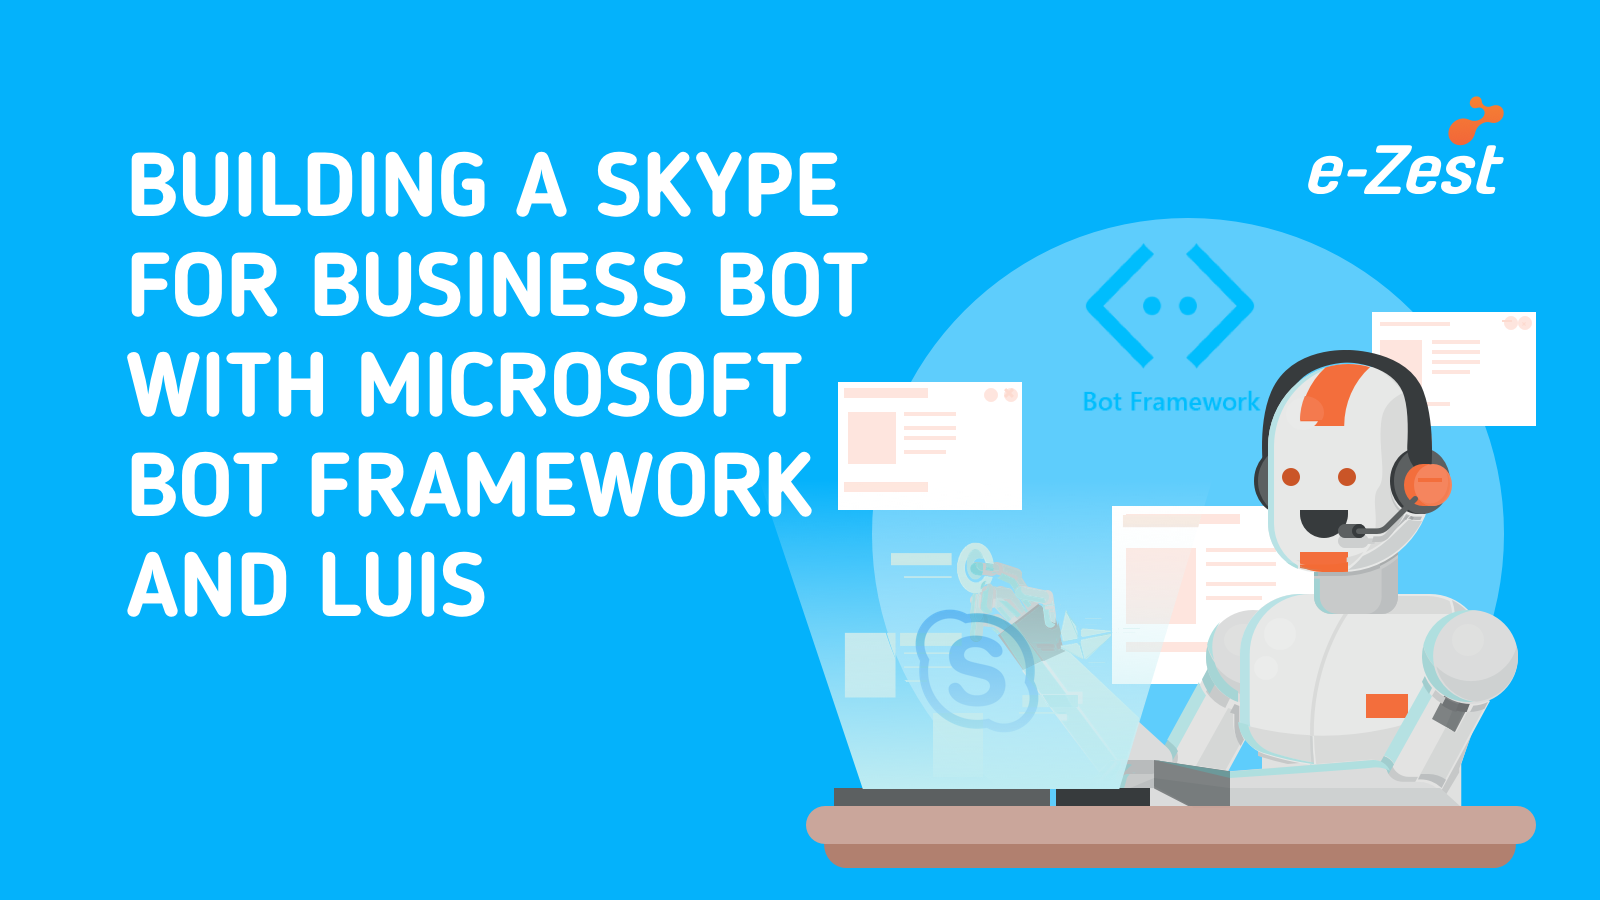 Building a Skype for Business bot with Microsoft Bot Framework and